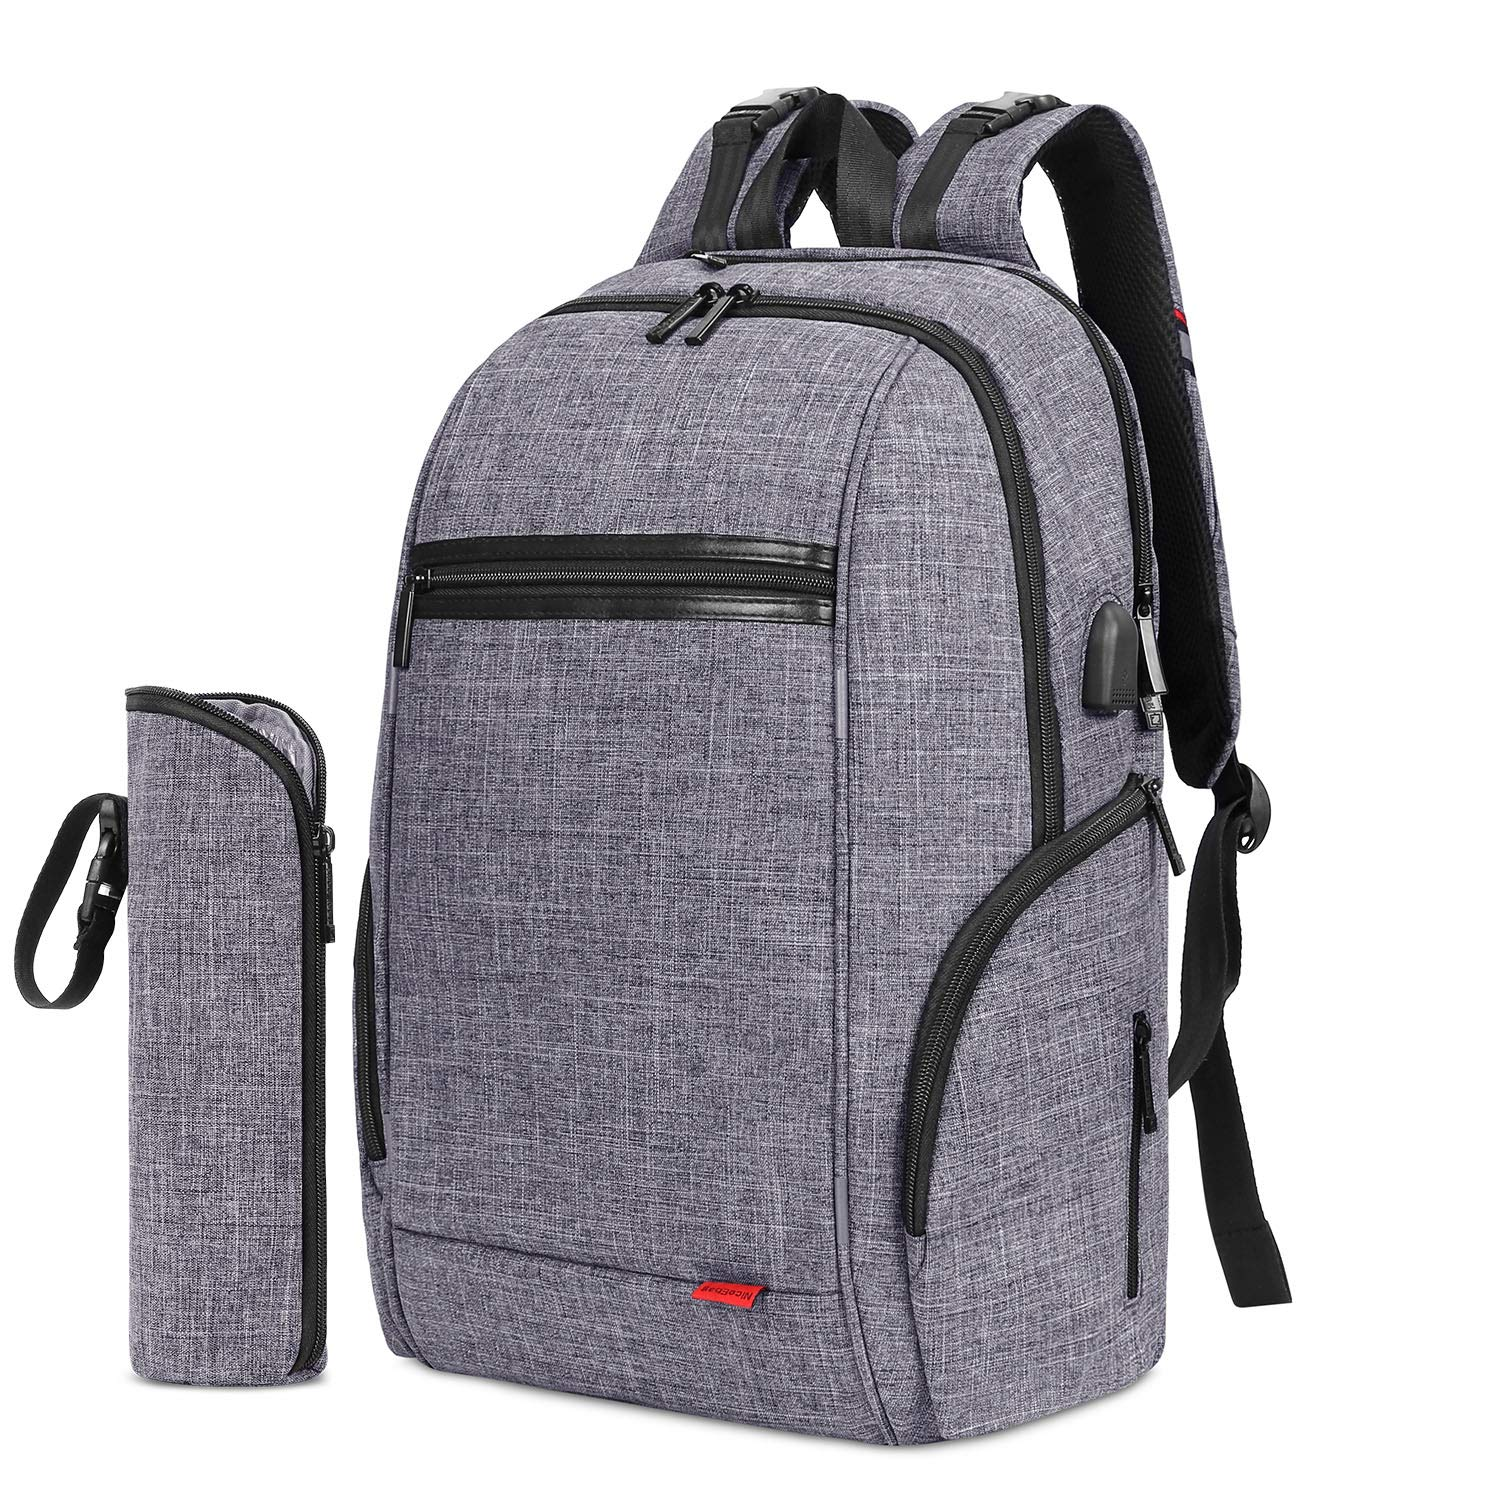 SROTEK Diaper Bag Backpack Multifunction Water Resistant Baby Diaper Bag Nappy Bag With USB Charging Port Changing Pad Insulated Bottle Pockets For Mommy Daddy, Grey